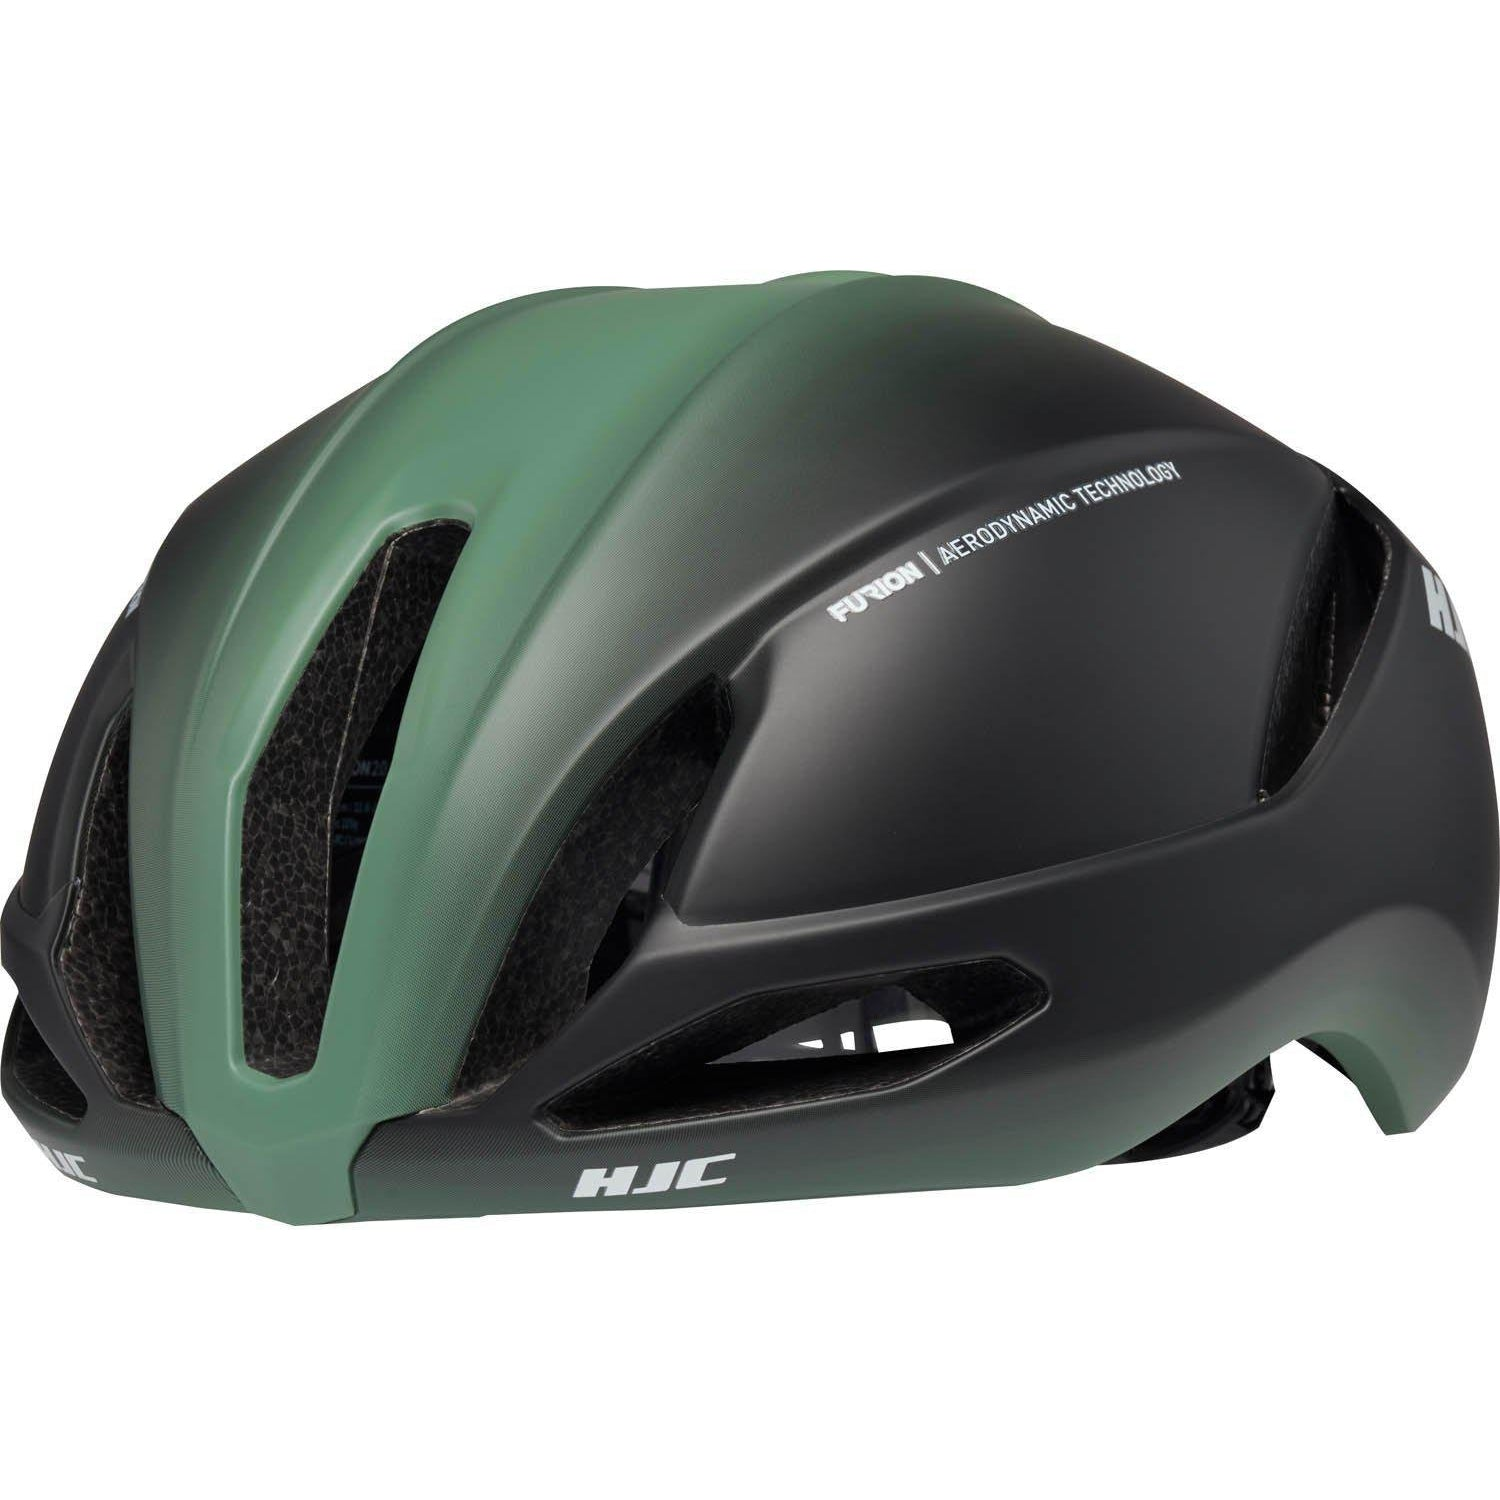 HJC-HJC Furion 2.0 Road Cycling Helmet-Fade Olive-S-HJC81213701-saddleback-elite-performance-cycling